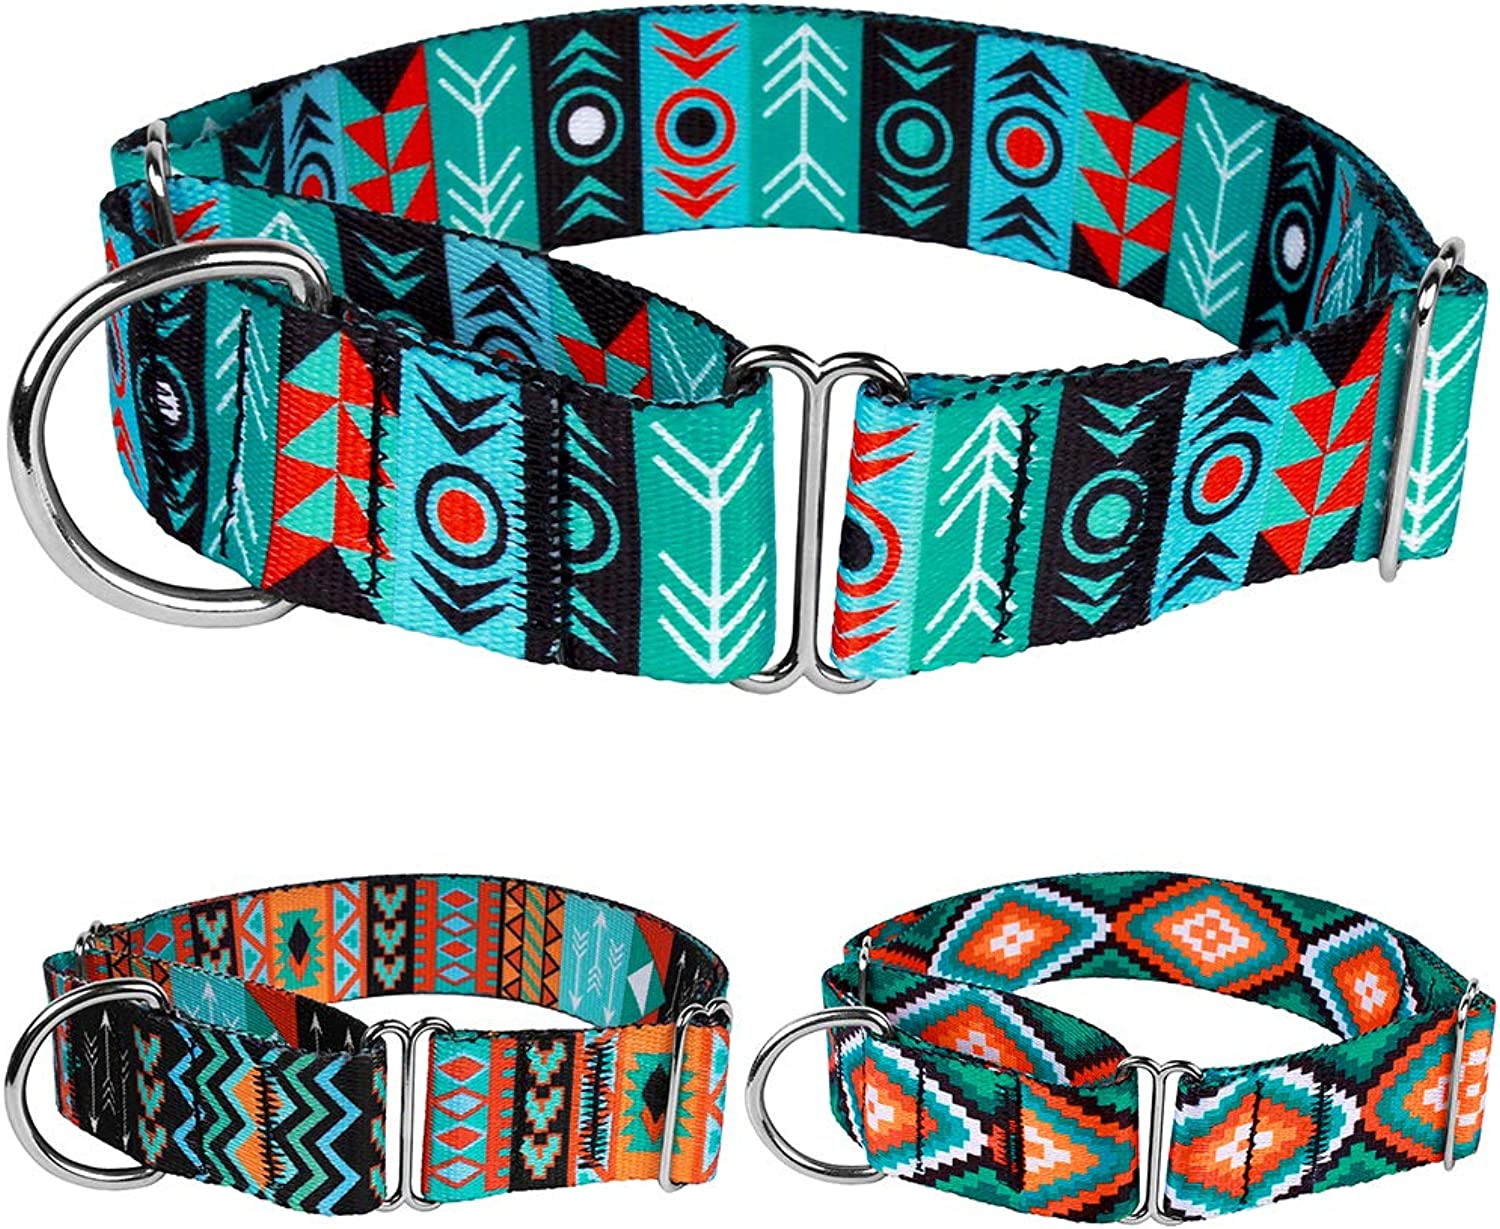 CollarDirect Martingale Dog Collar Nylon Safety Training Tribal Pattern Adjustable Heavy Duty Collars for Dogs Medium Large (Pattern 1, Extra Large, Neck Size 19 24 )